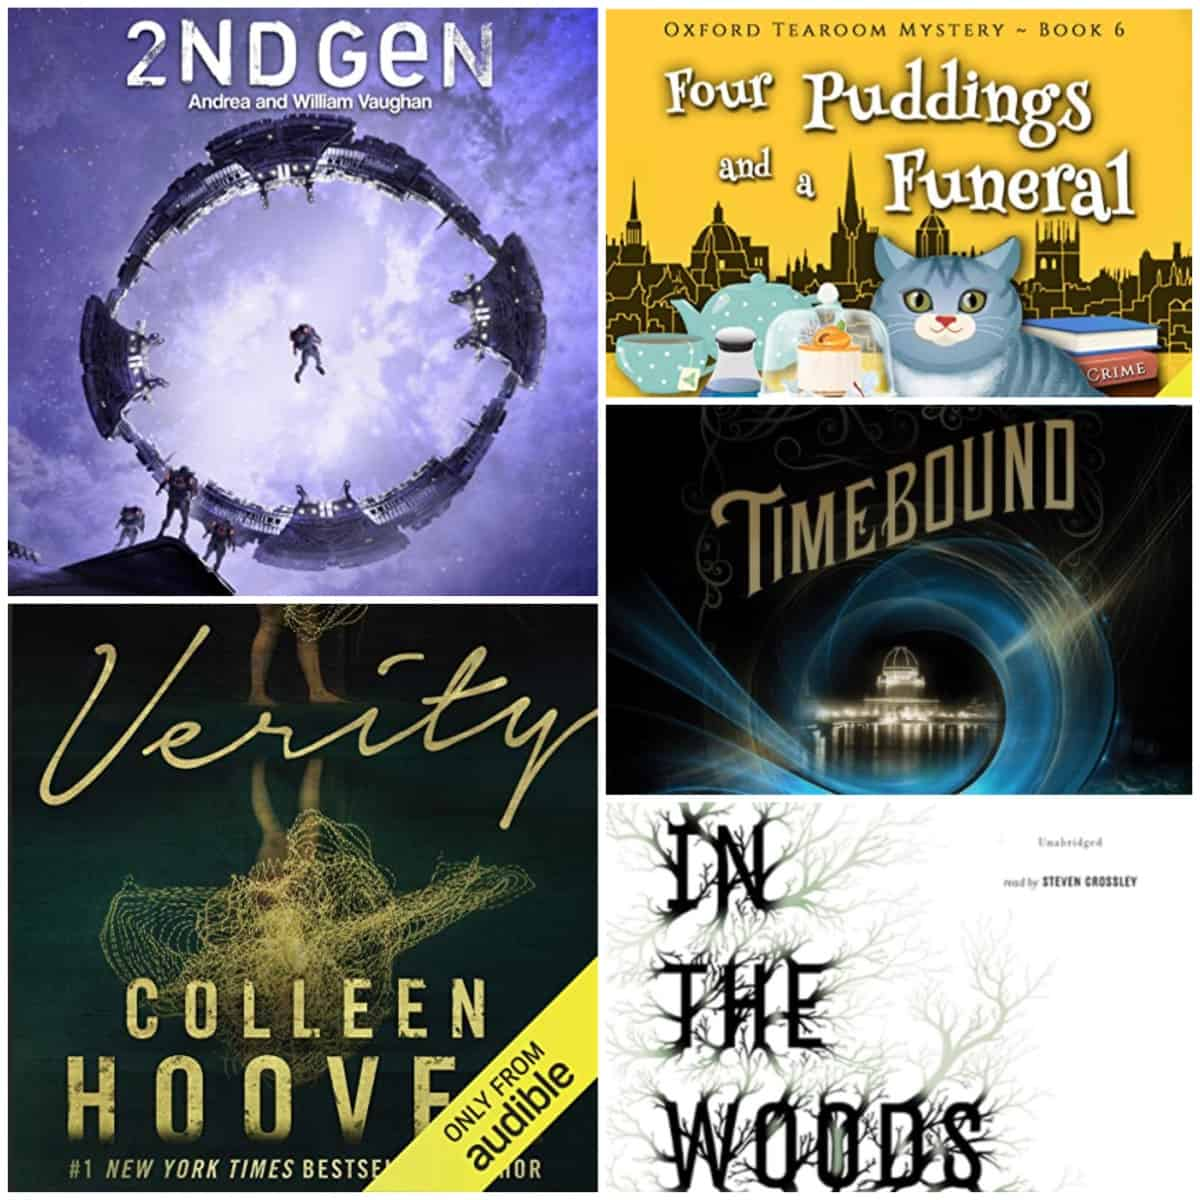 In this Book Chat, some great mysteries and sci-fi, too, of course, from Tana French, H. Y. Hanna, Andrea Vaughan and William Vaughan, Colleen Hoover, and Rysa Walker.